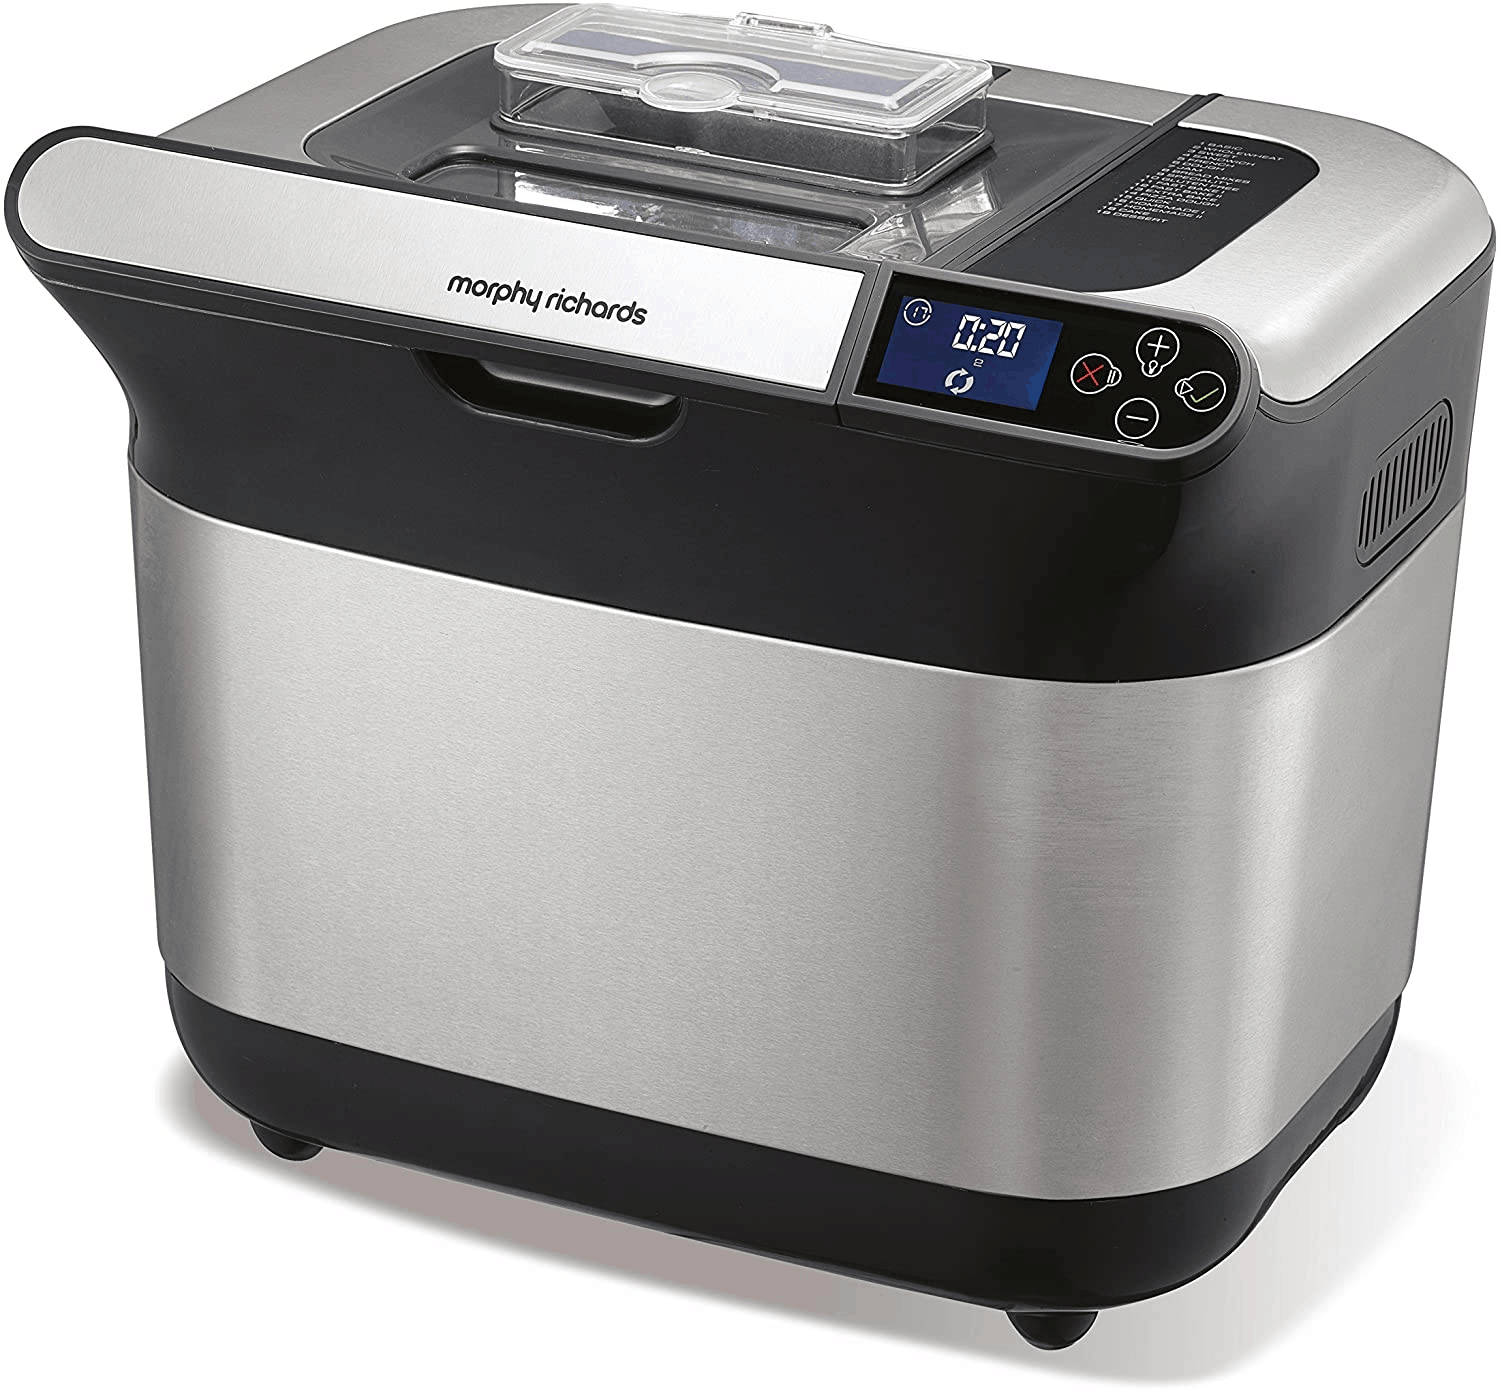 Morphy Richards Premium Plus Bread Maker Stainless Steel 48319 bread maker review singapore